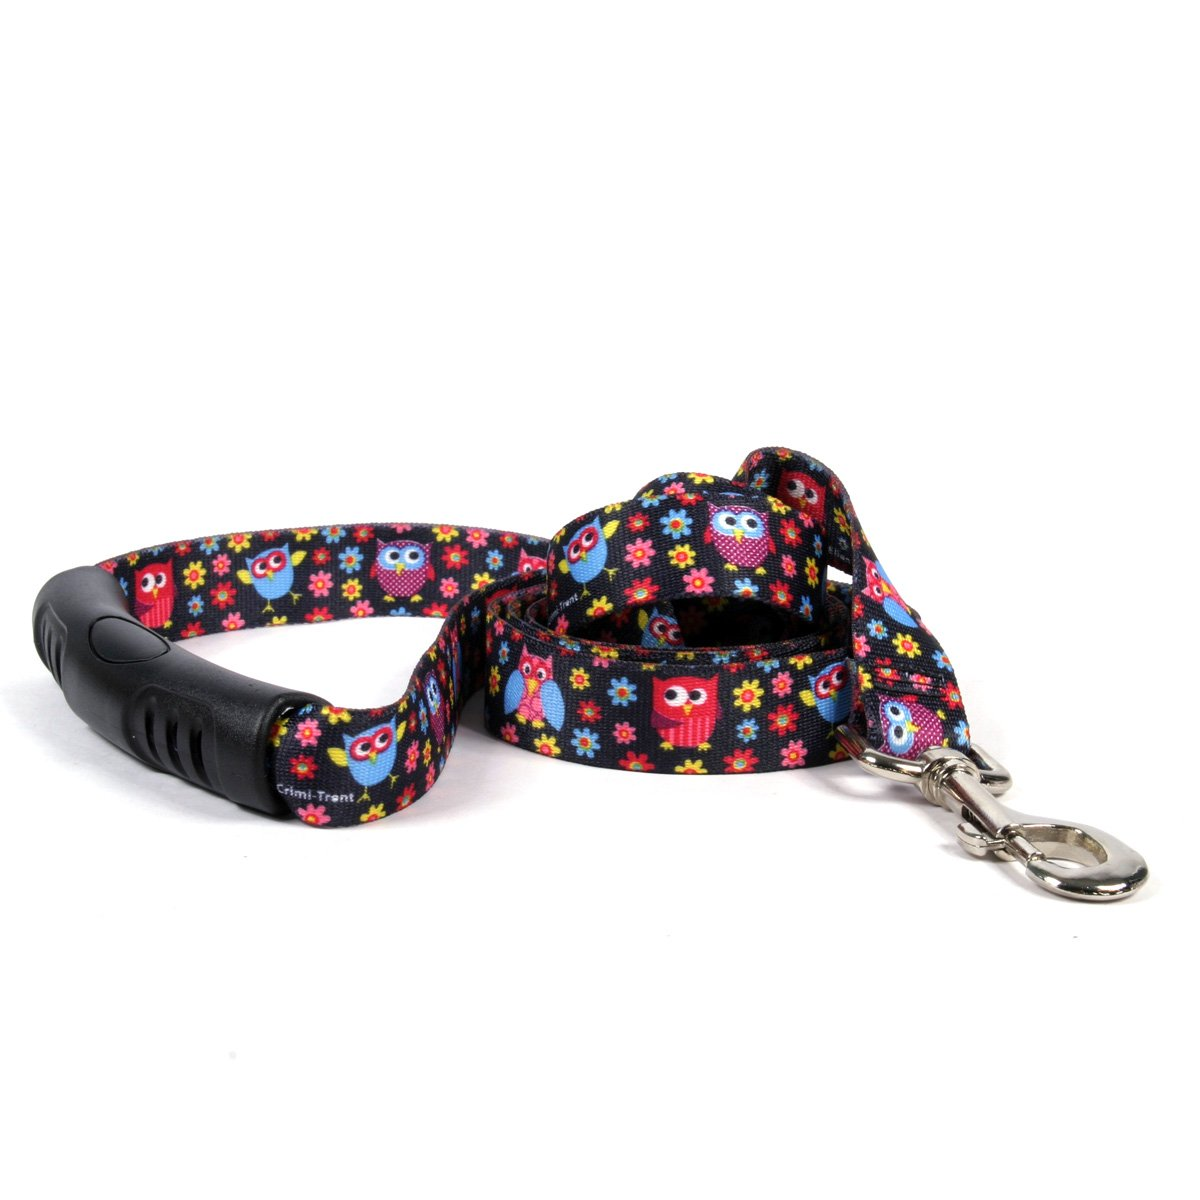 Yellow Dog Design Bright Owls Ez-Grip Dog Leash with Comfort Handle 3/4'' Wide and 5' (60'') Long, Small/Medium